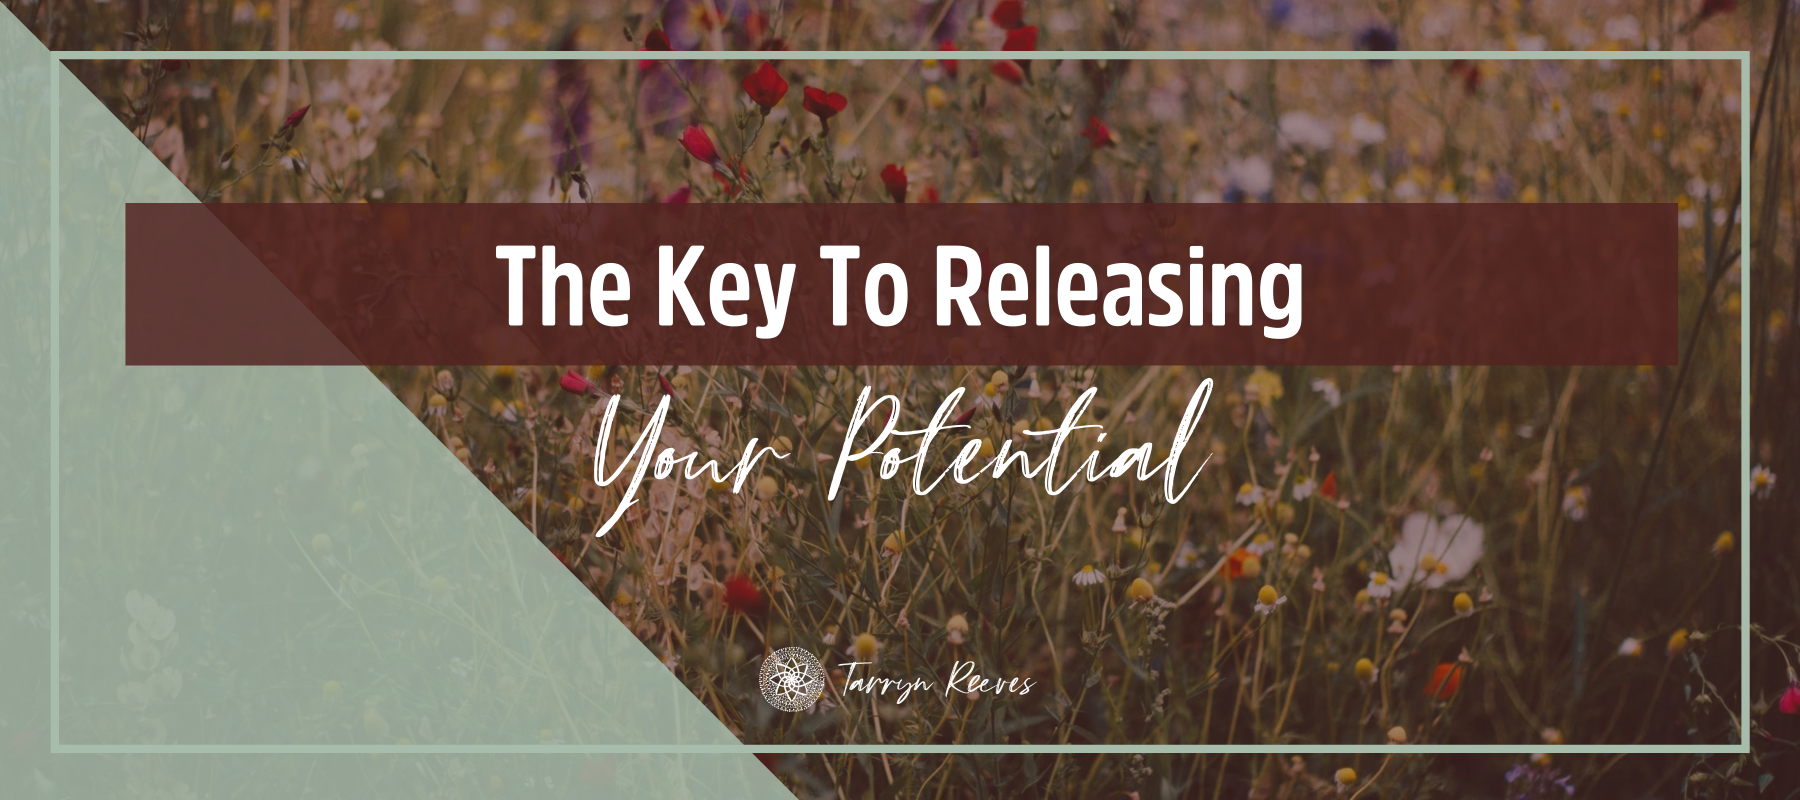 The Key to Releasing Your Potential